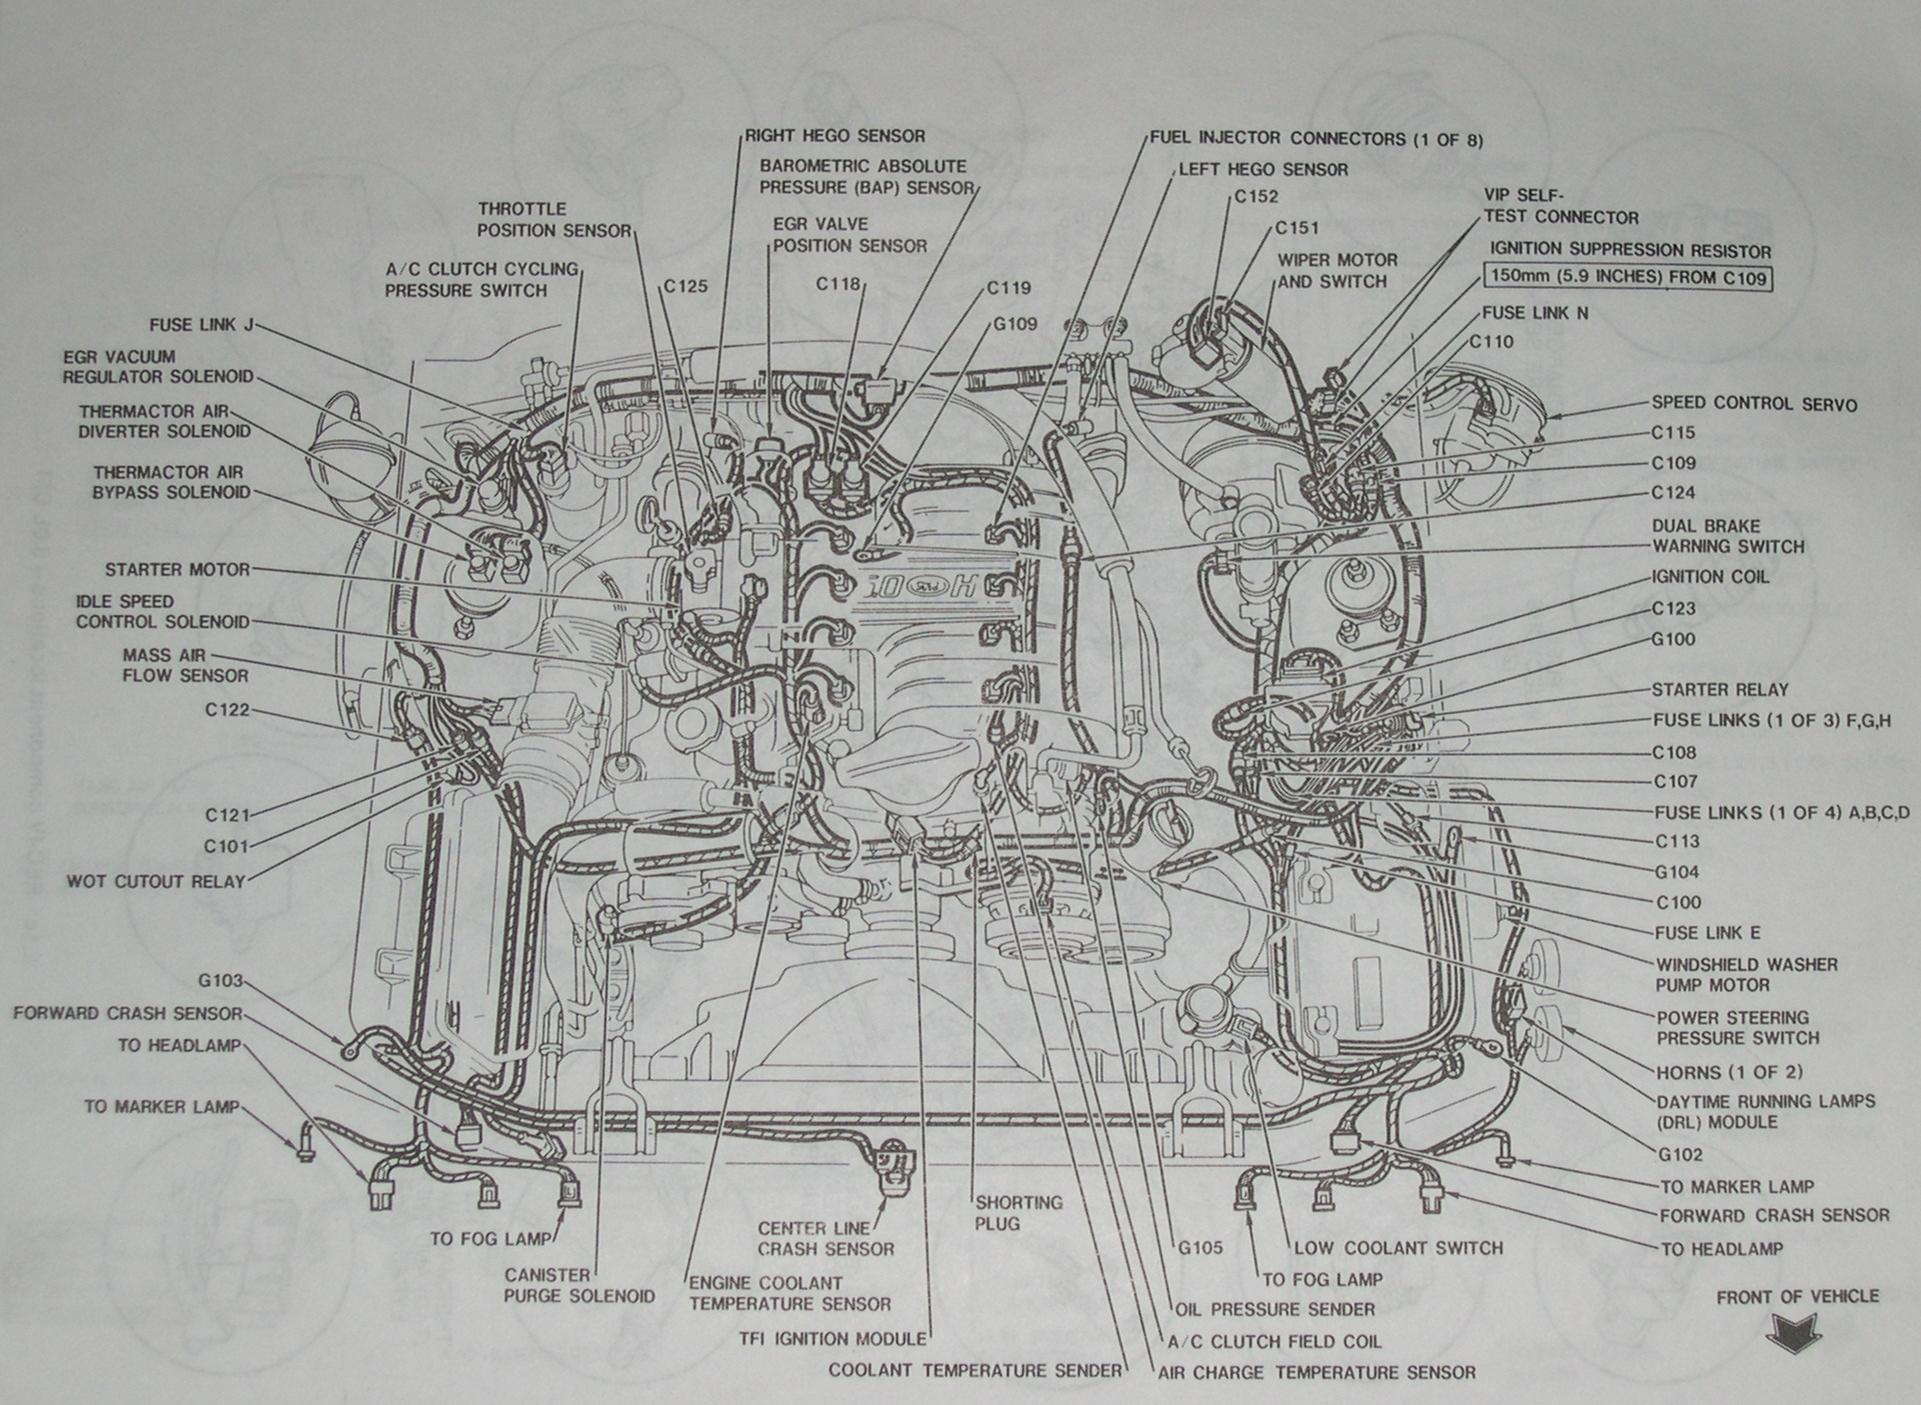 hight resolution of 1990 mustang engine diagram wiring diagram files 06 mustang engine schematics